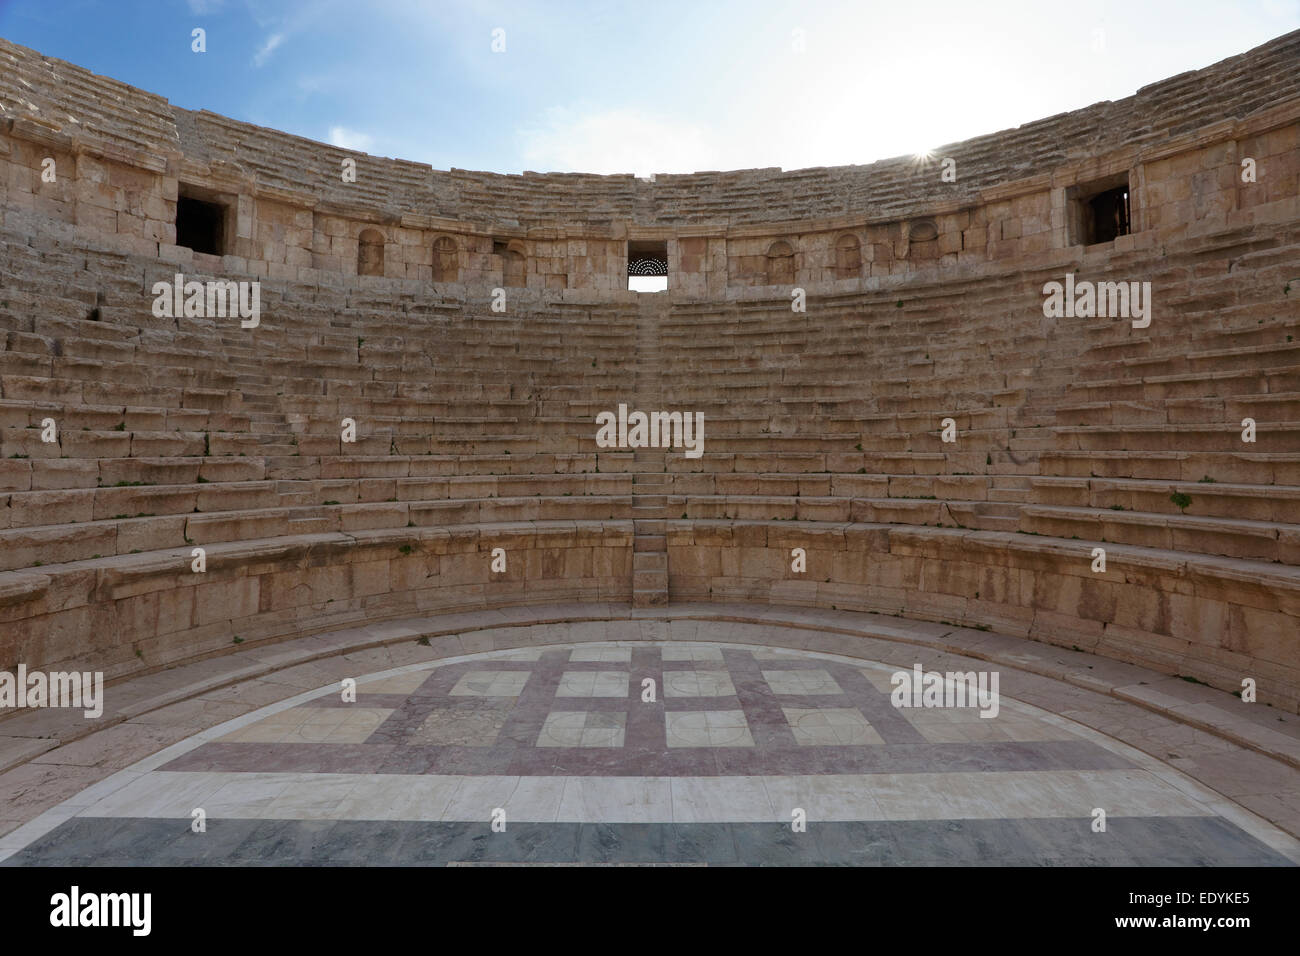 South Theatre, built in 90 - 92 AD, with 32 rows of seats for 5,000 spectators, ancient Roman city of Jerash - Stock Image